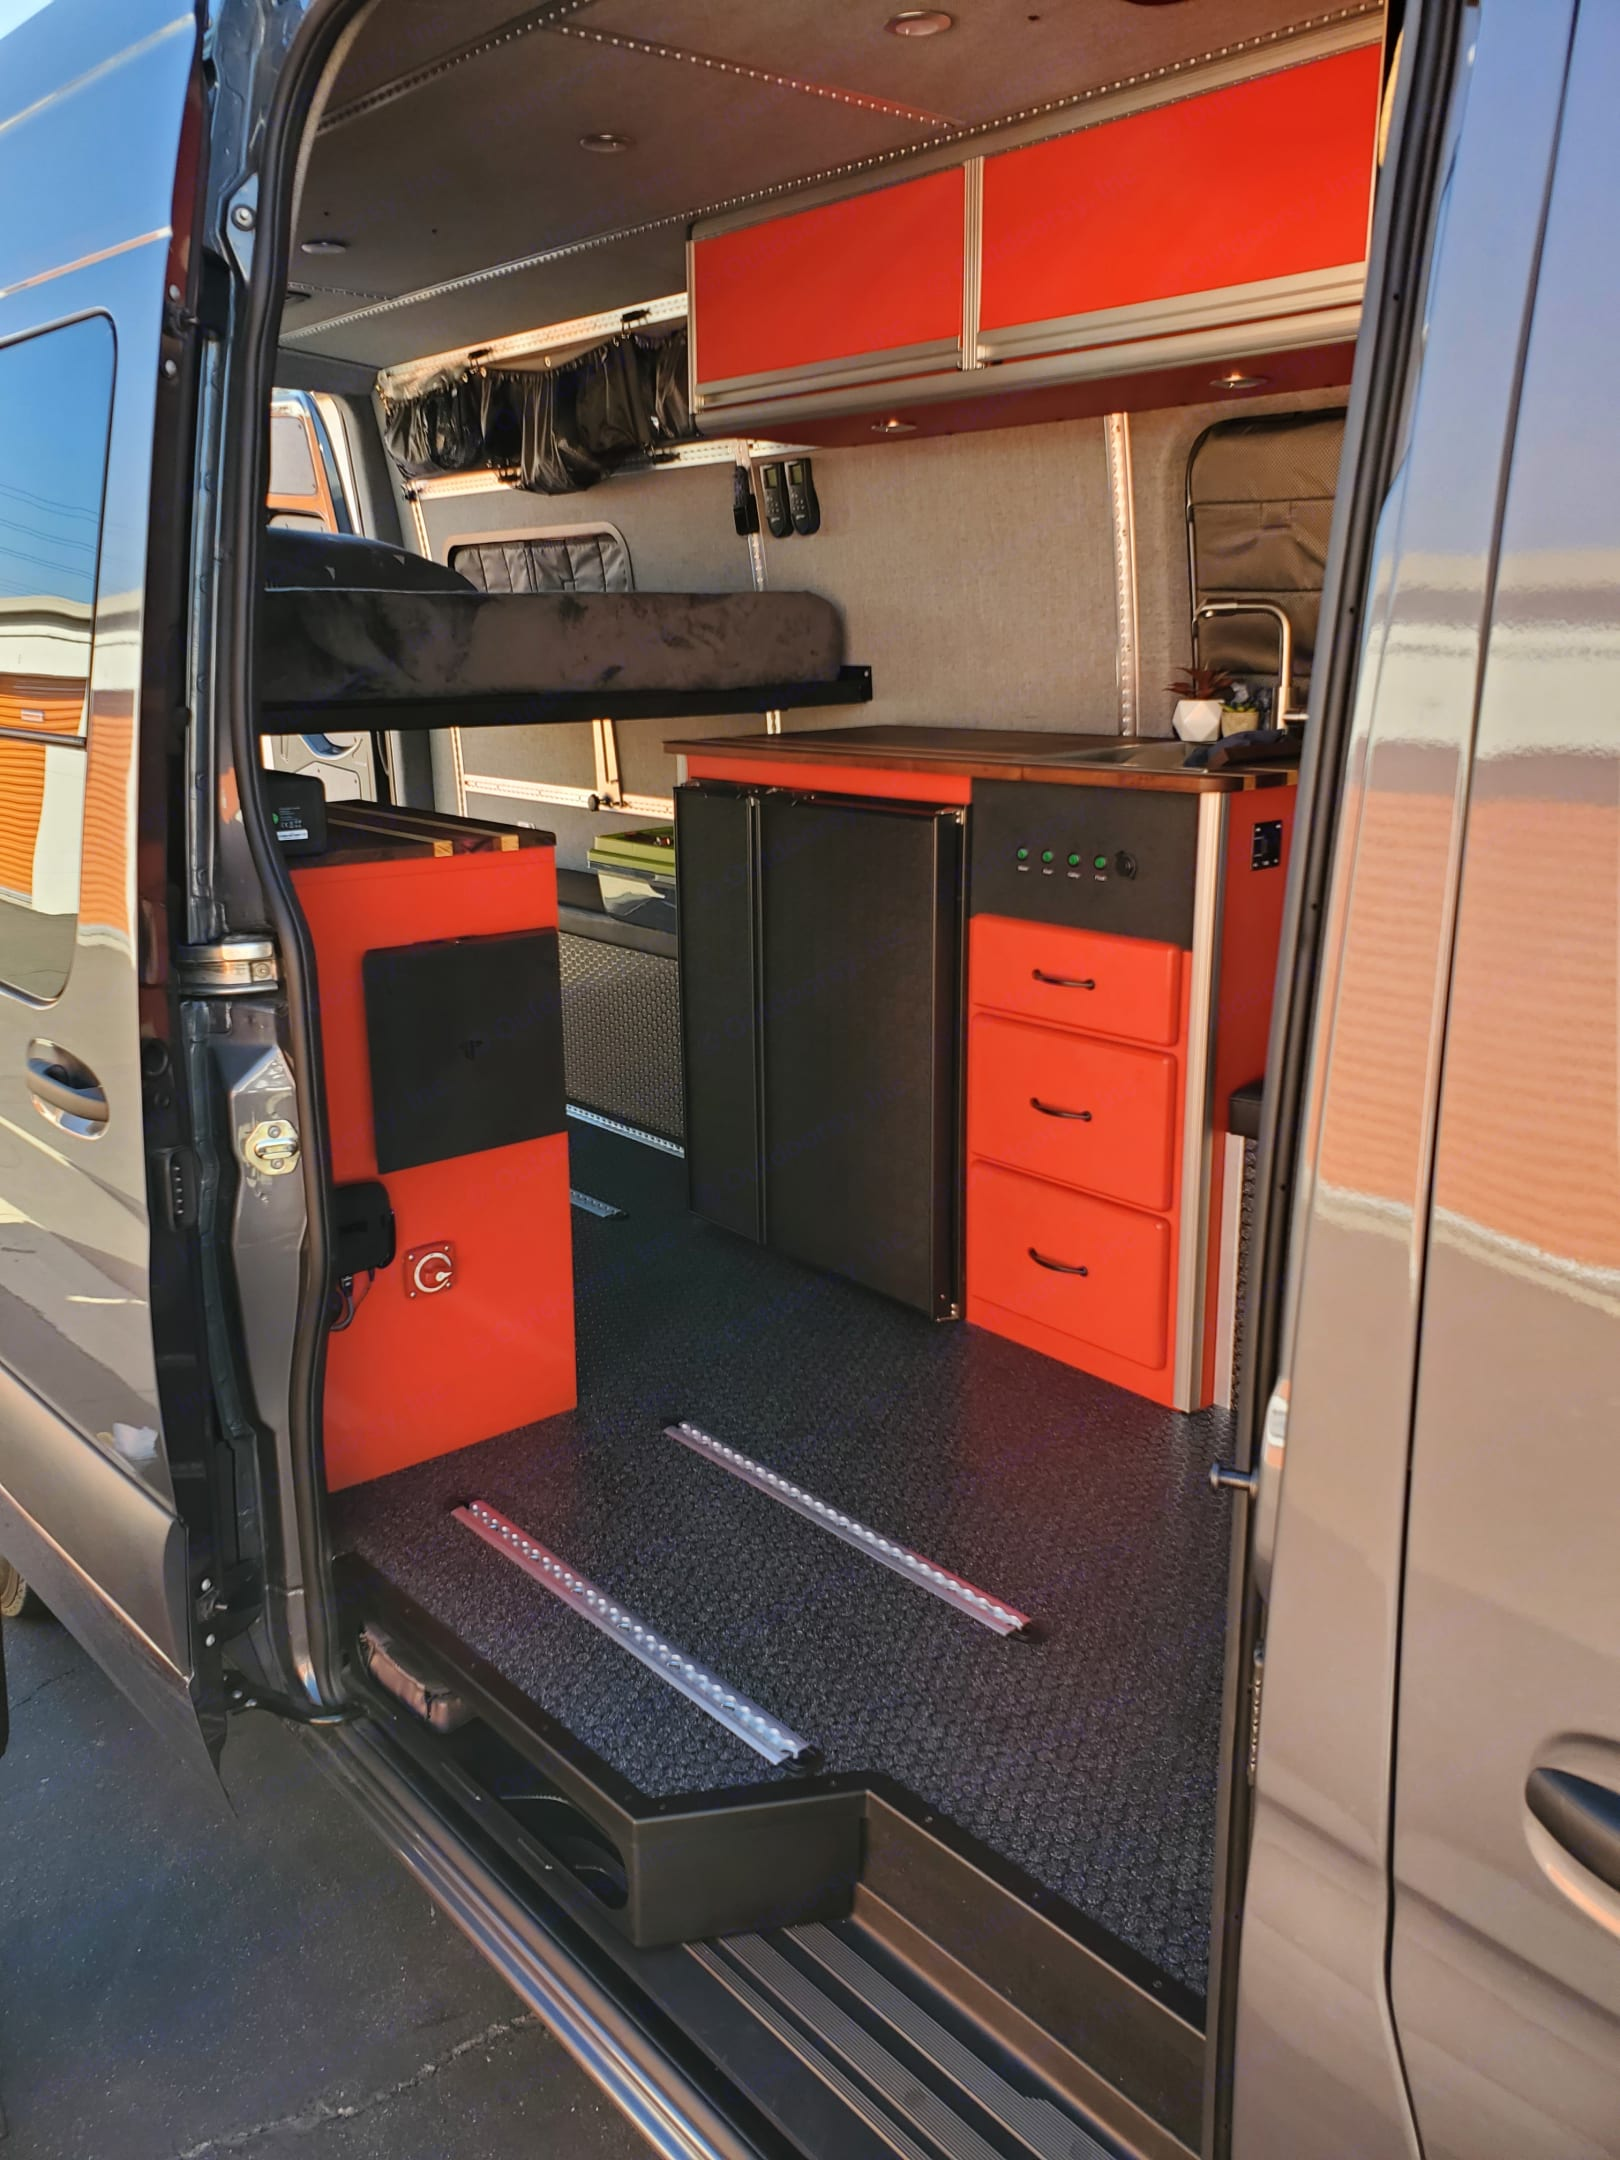 Good view of the Galley area with the captains chair removed. Look at that fridge! 🙌. Mercedes-Benz Sprinter 2019